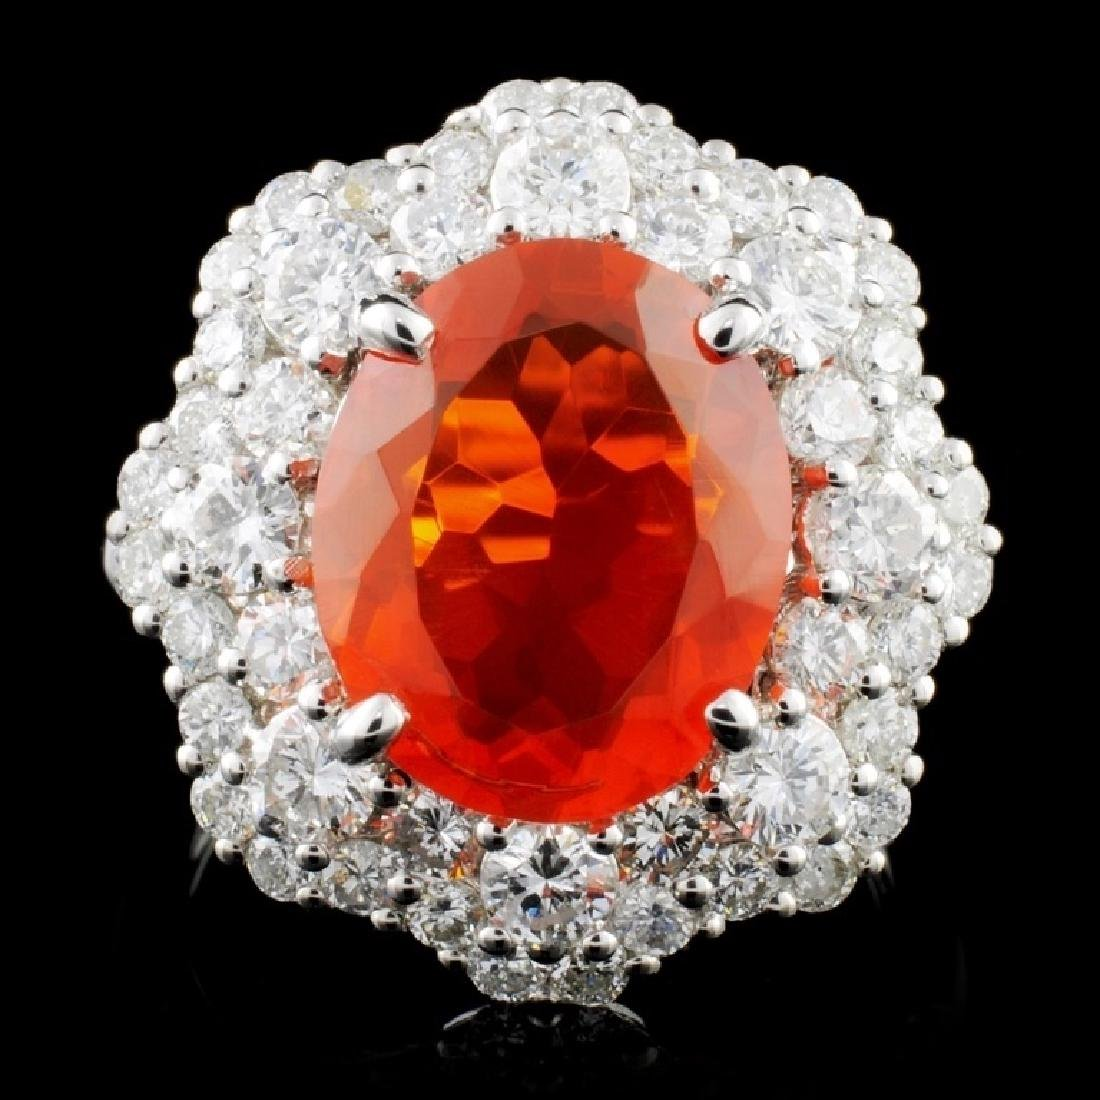 18K Gold 3.15ct Fire Opal & 2.05ctw Diamond Ring